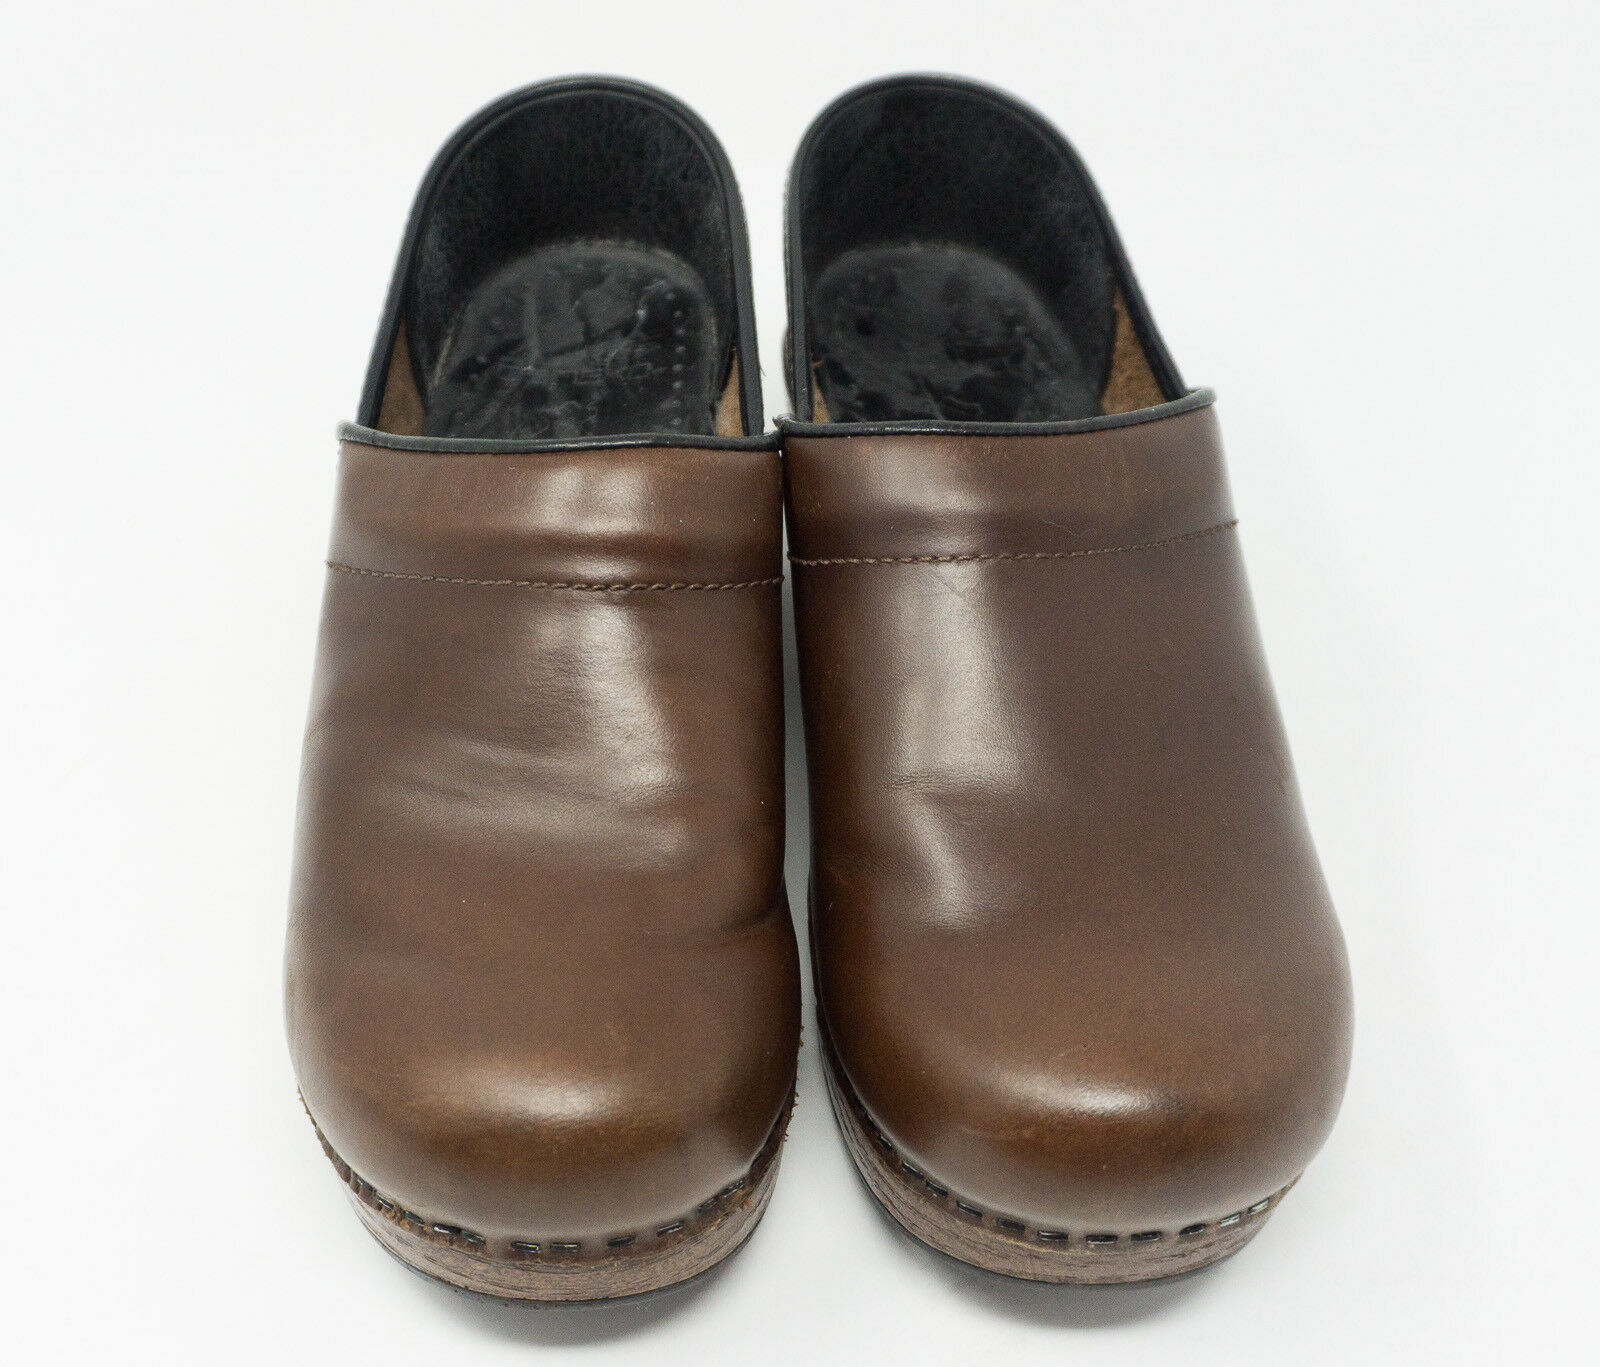 Dansko Brown Leather Slip On Clogs Casual Work shoes's Women's Size 6.5M  C201